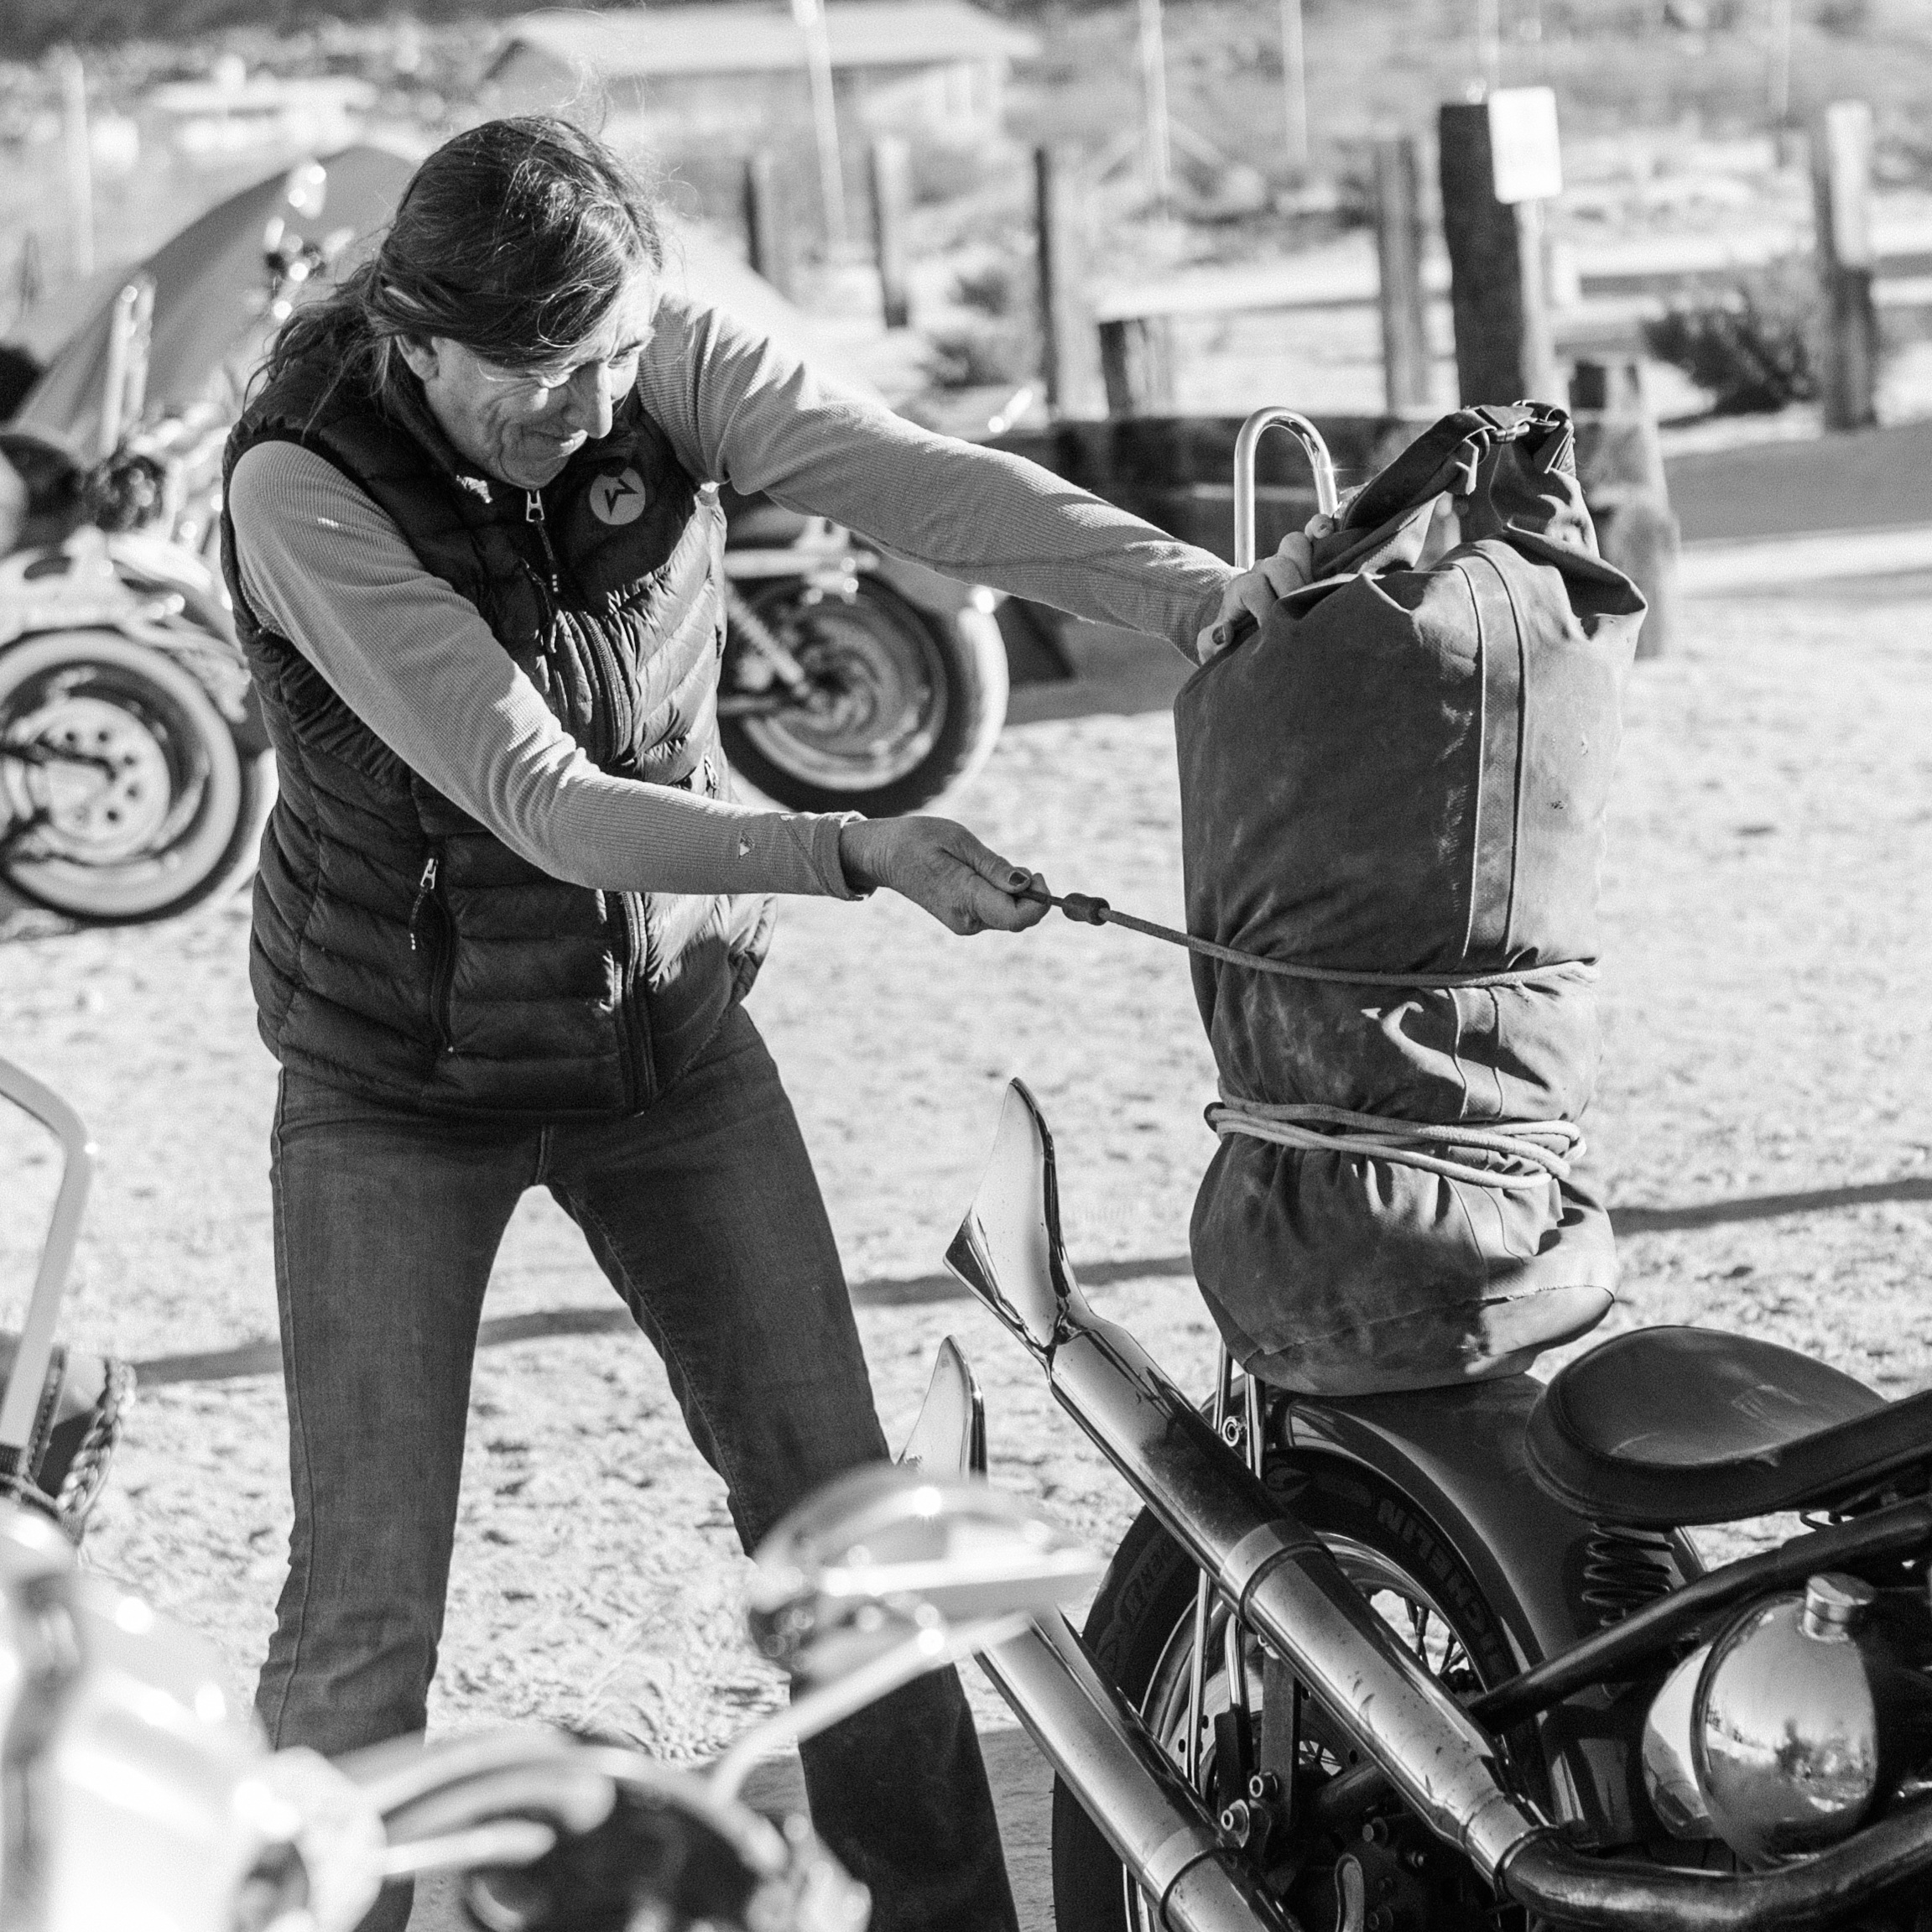 How to Safely Pack Your Bike - Riding with a loaded bike does feel different so make sure to get a feel for it before you set out